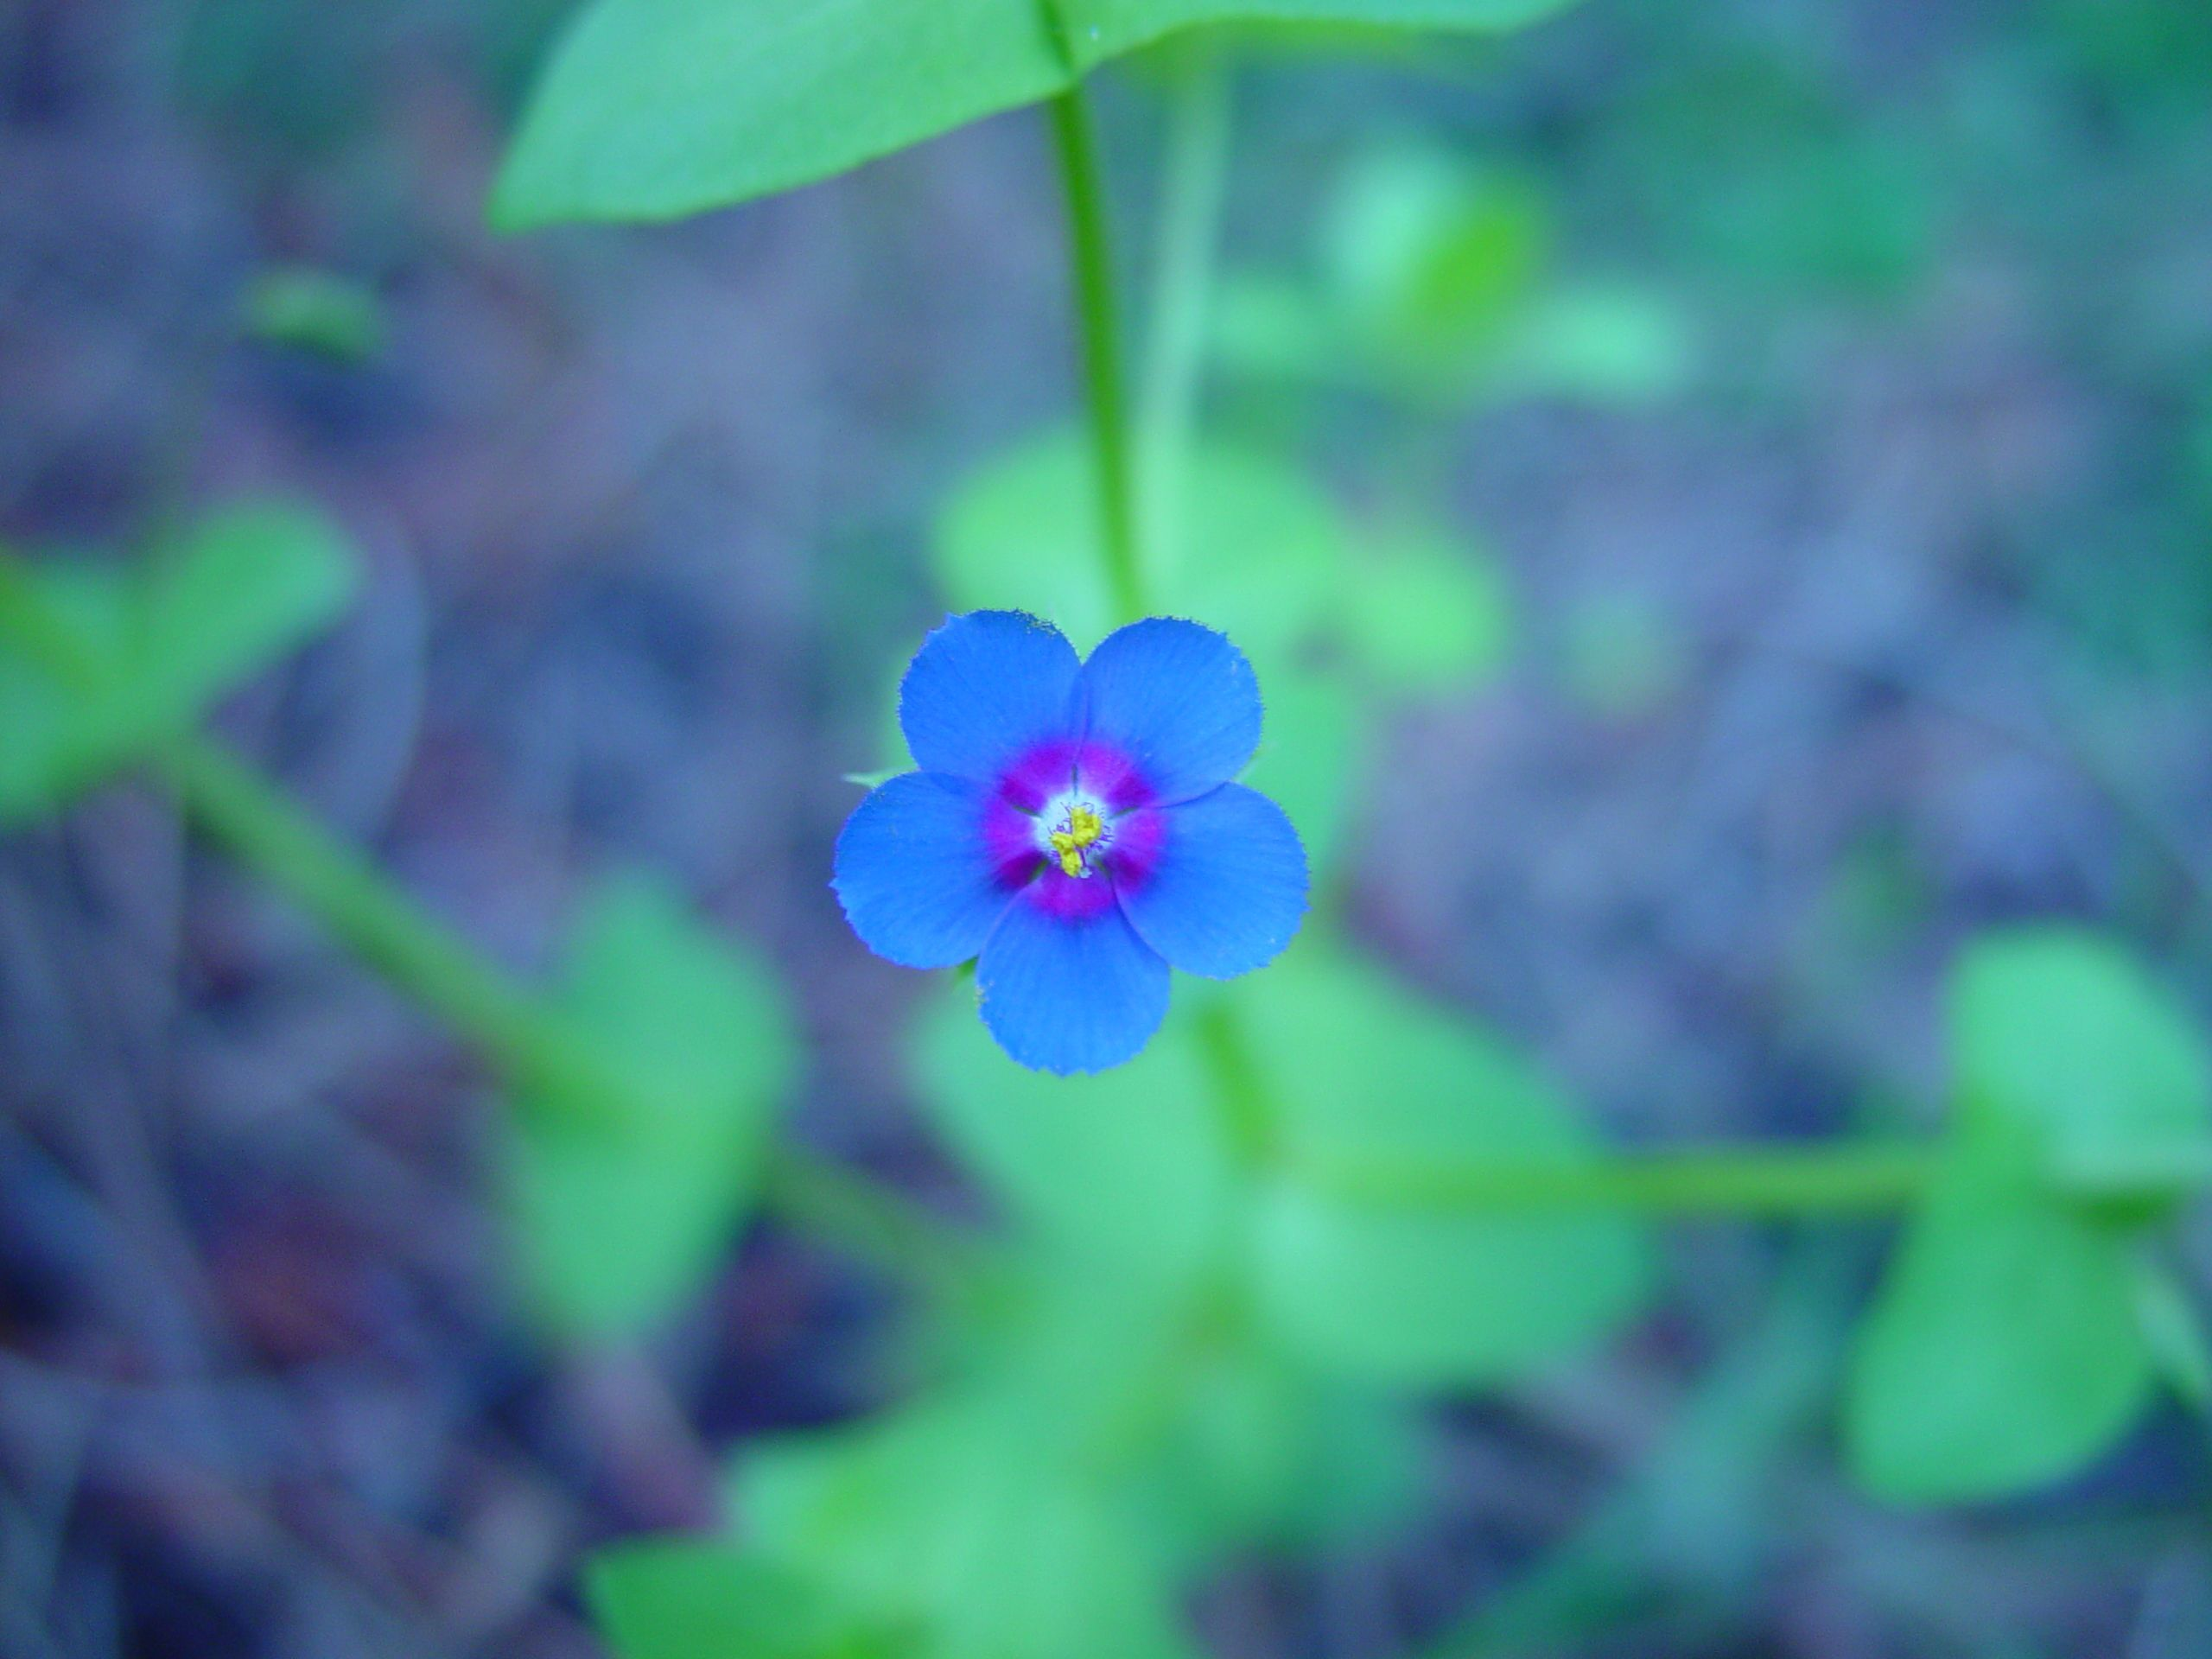 Filesmall blue flowerg wikimedia commons filesmall blue flowerg izmirmasajfo Image collections